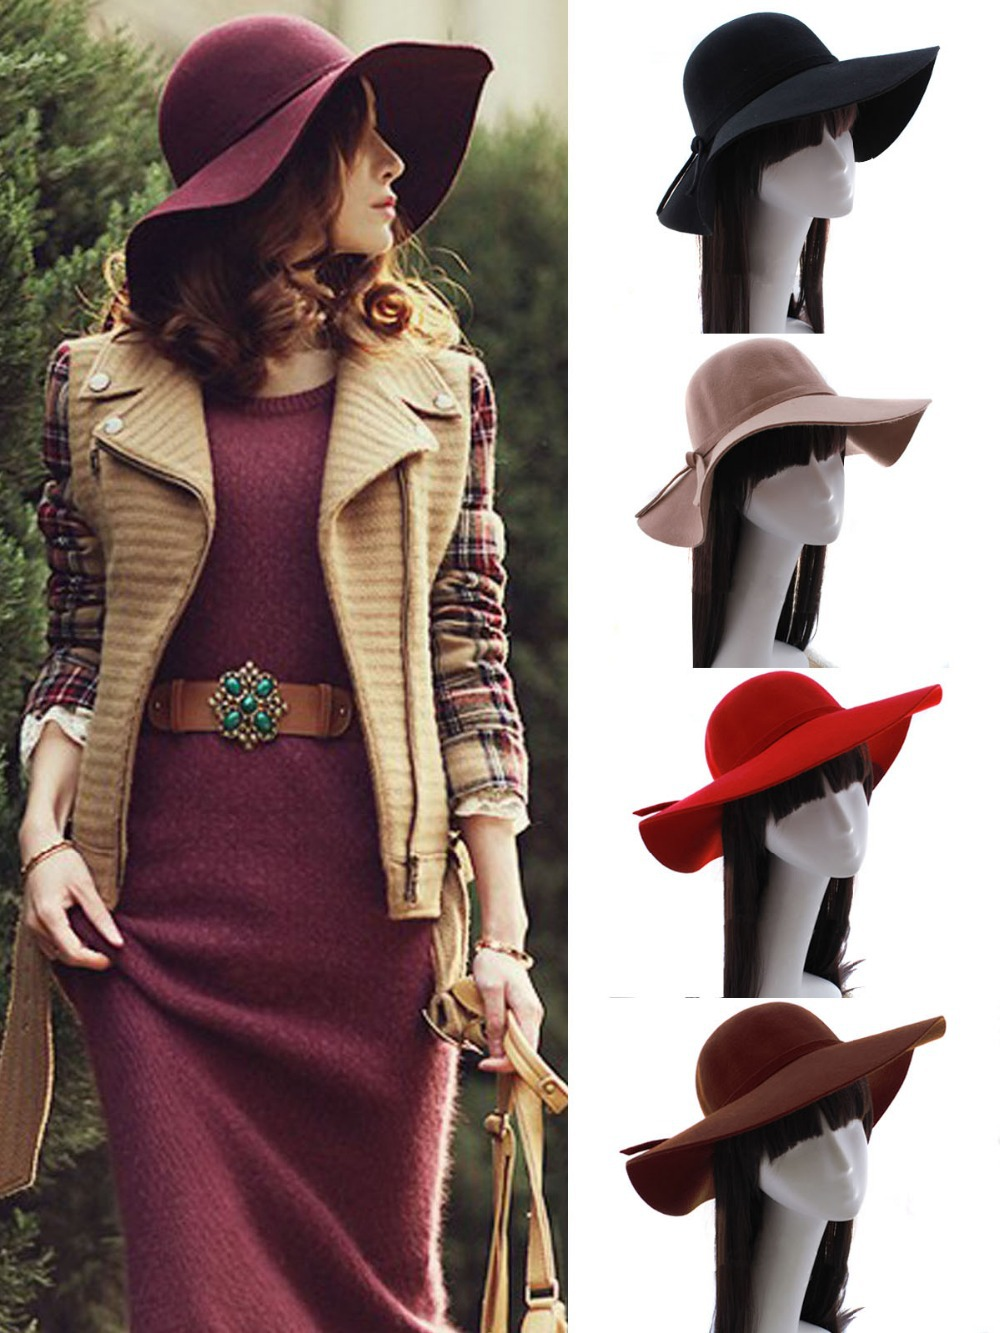 New Vintage Women Lady Wide Brim Wool felt Bowler Fedora Hats Floppy Cloche Cap + Cable Tie(China (Mainland))